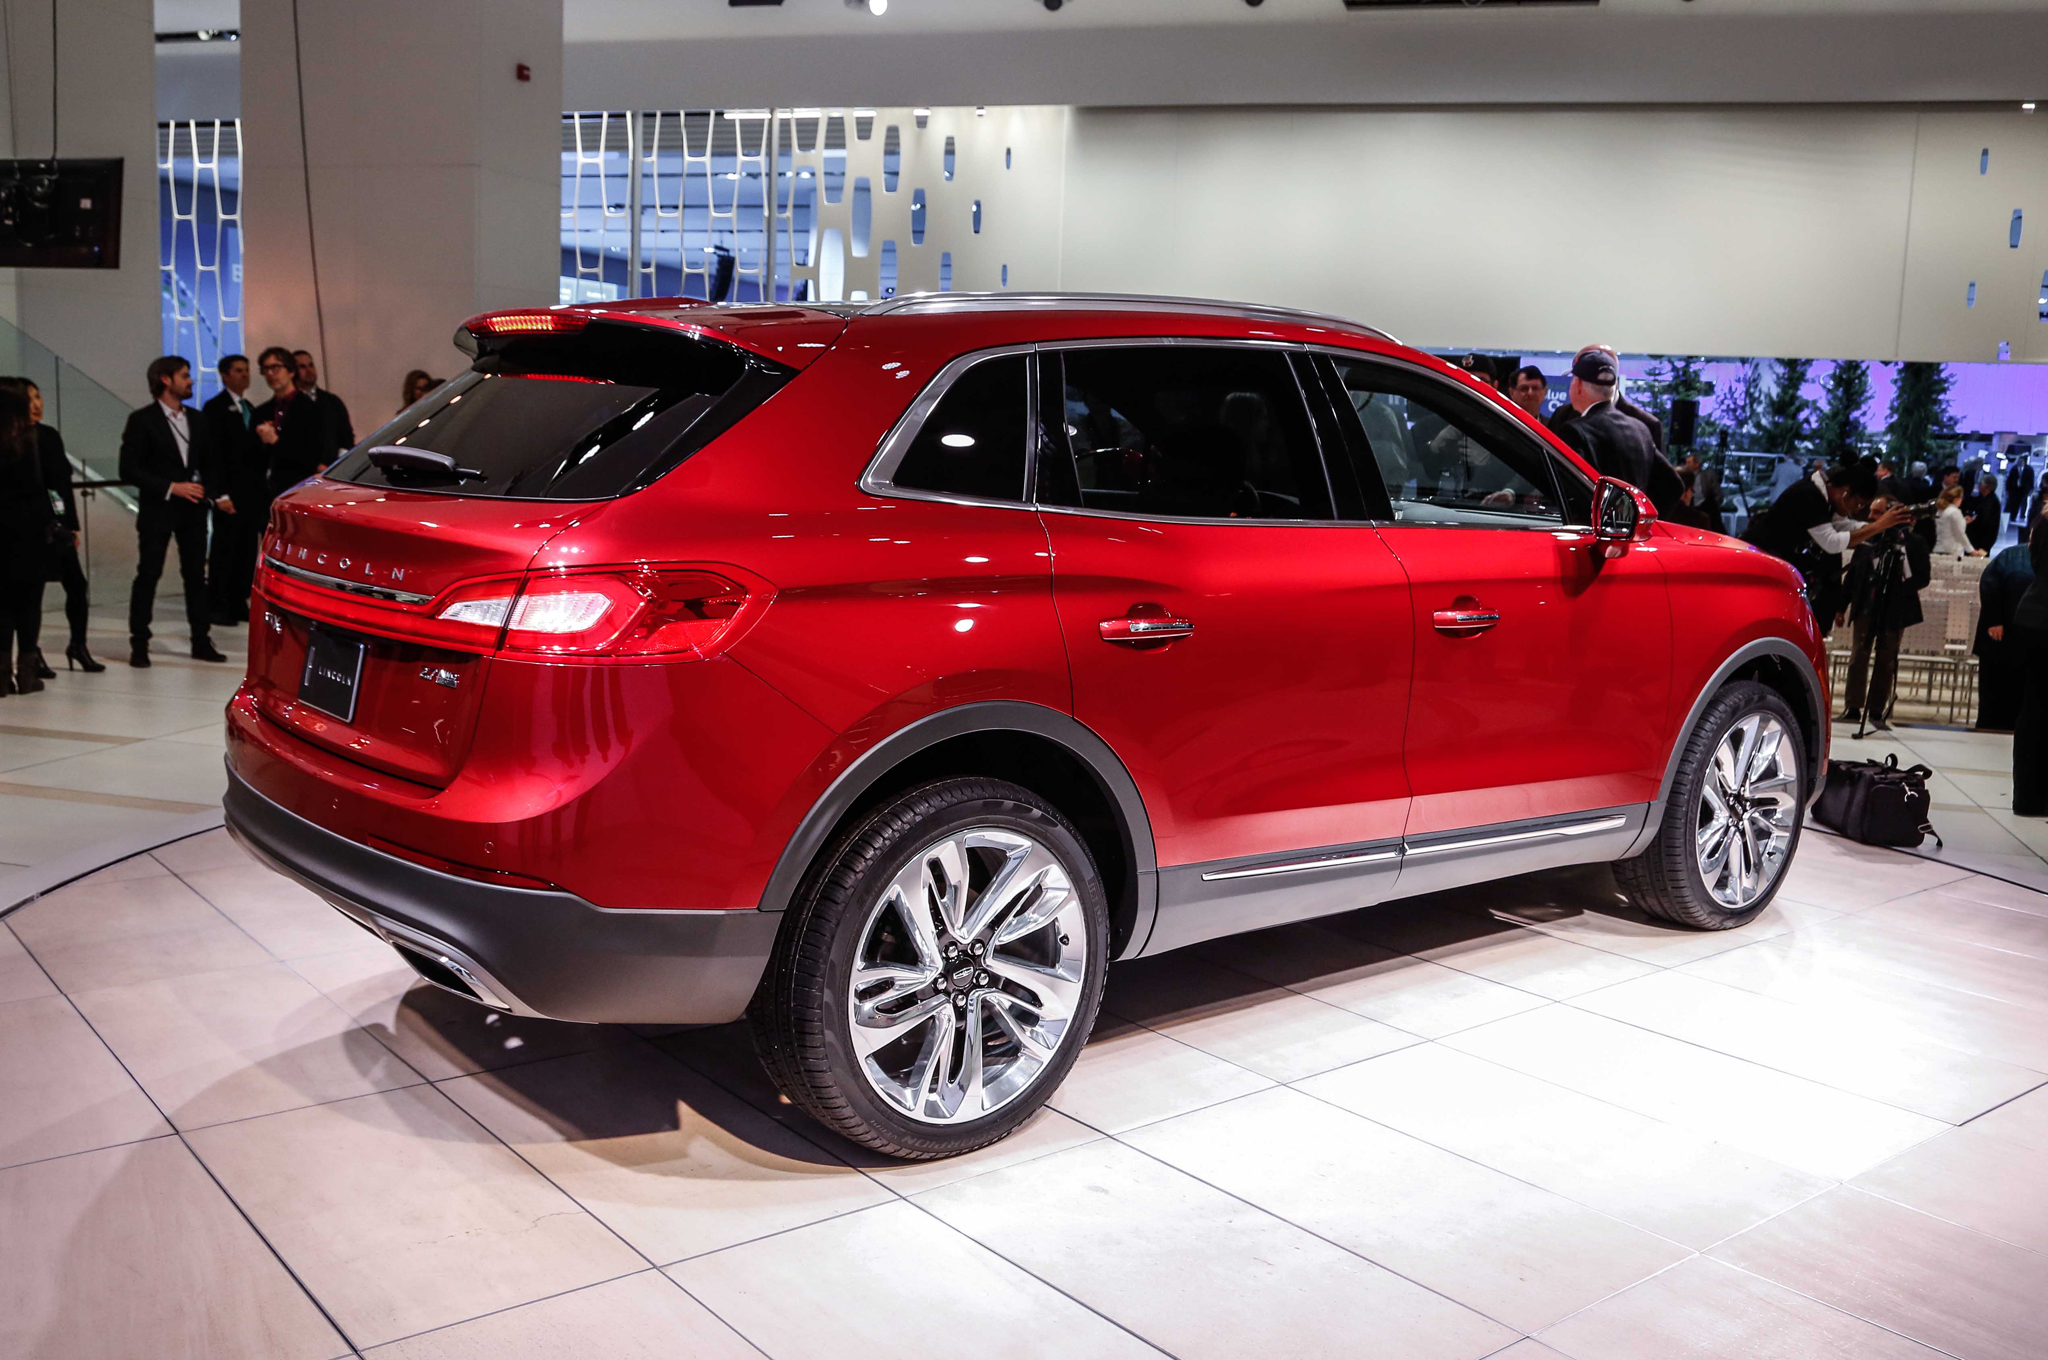 2016 Lincoln MKX Rear Side